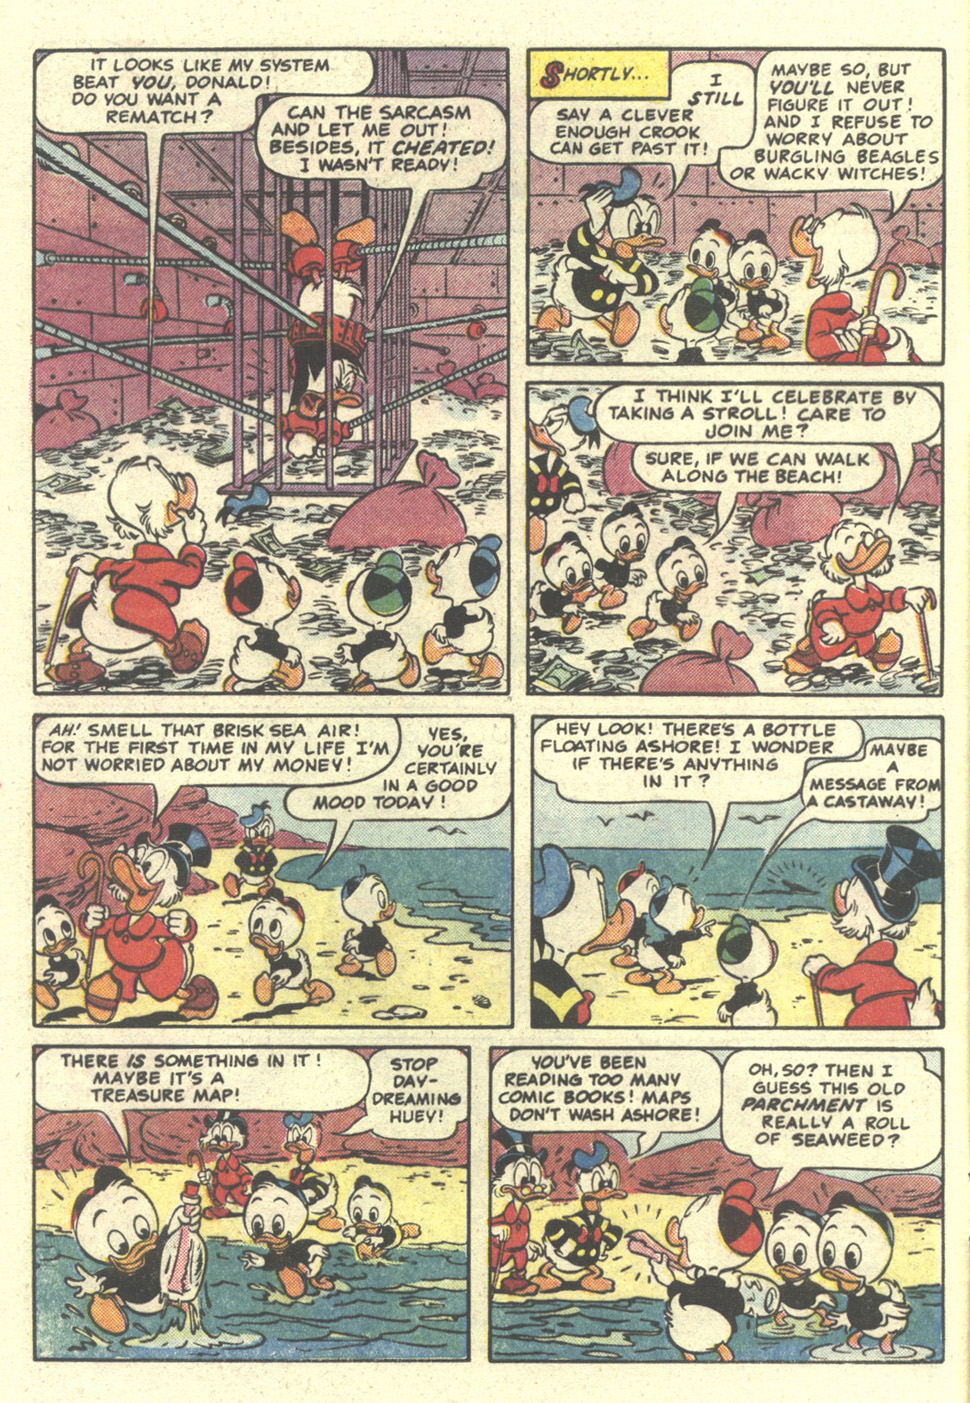 efree.com/uncle-scrooge-1 #193 - English 4